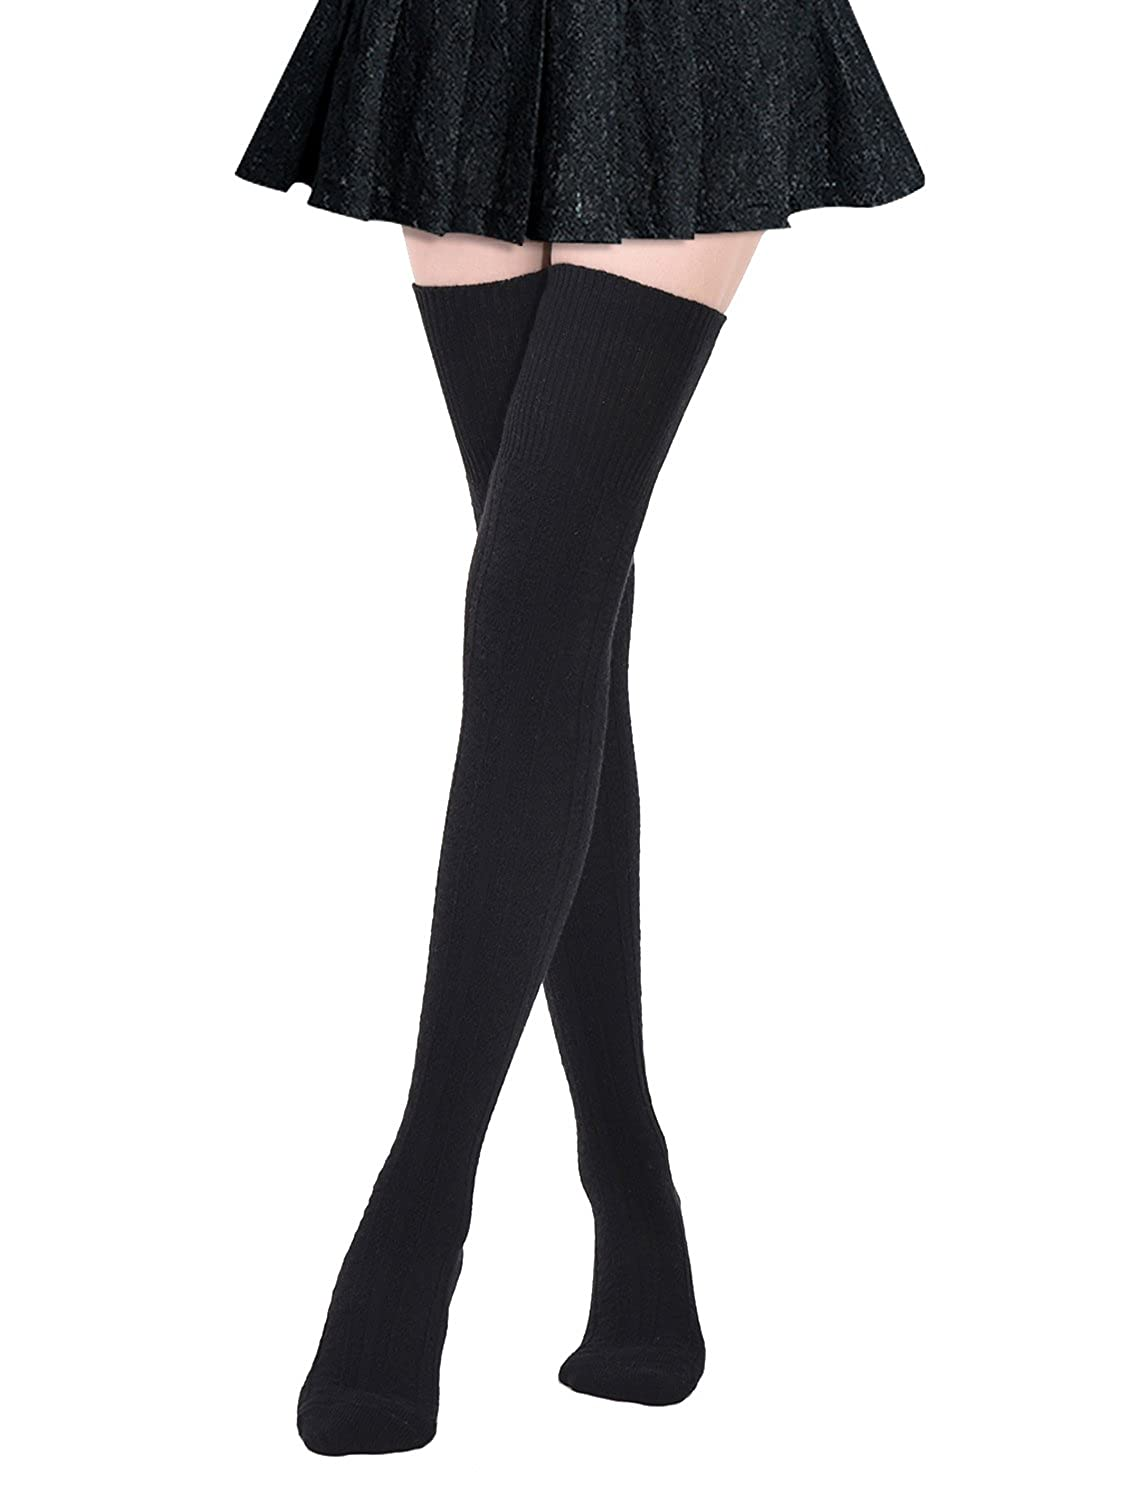 c4bf622f6da Kayhoma Extra Long Cotton Thigh High Socks Over the Knee High Boot  Stockings Cotton Leg Warmers at Amazon Women s Clothing store